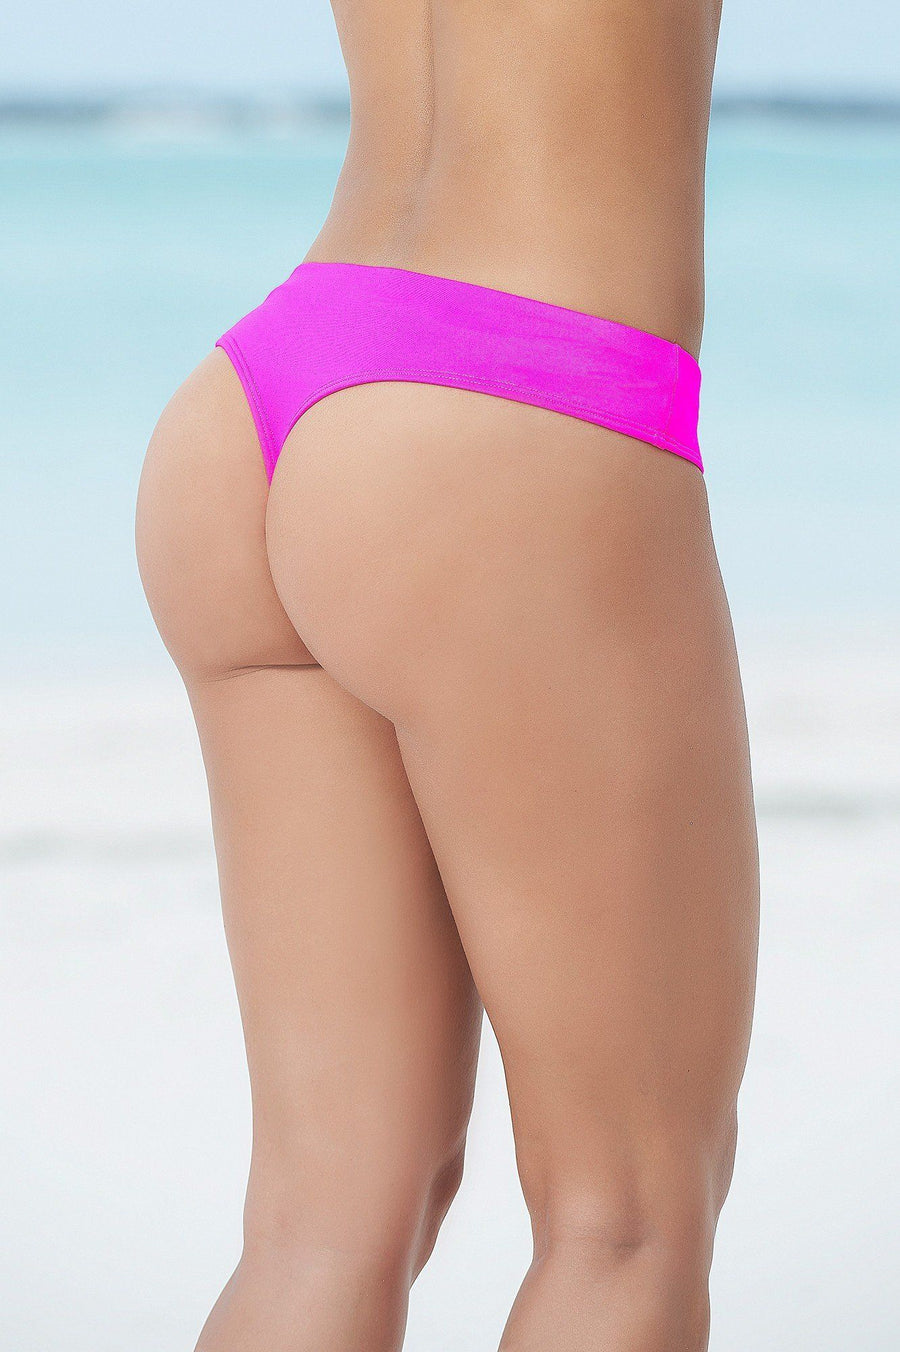 South Beach Booty Thong Thong Bikini- PIRATA COUTURE